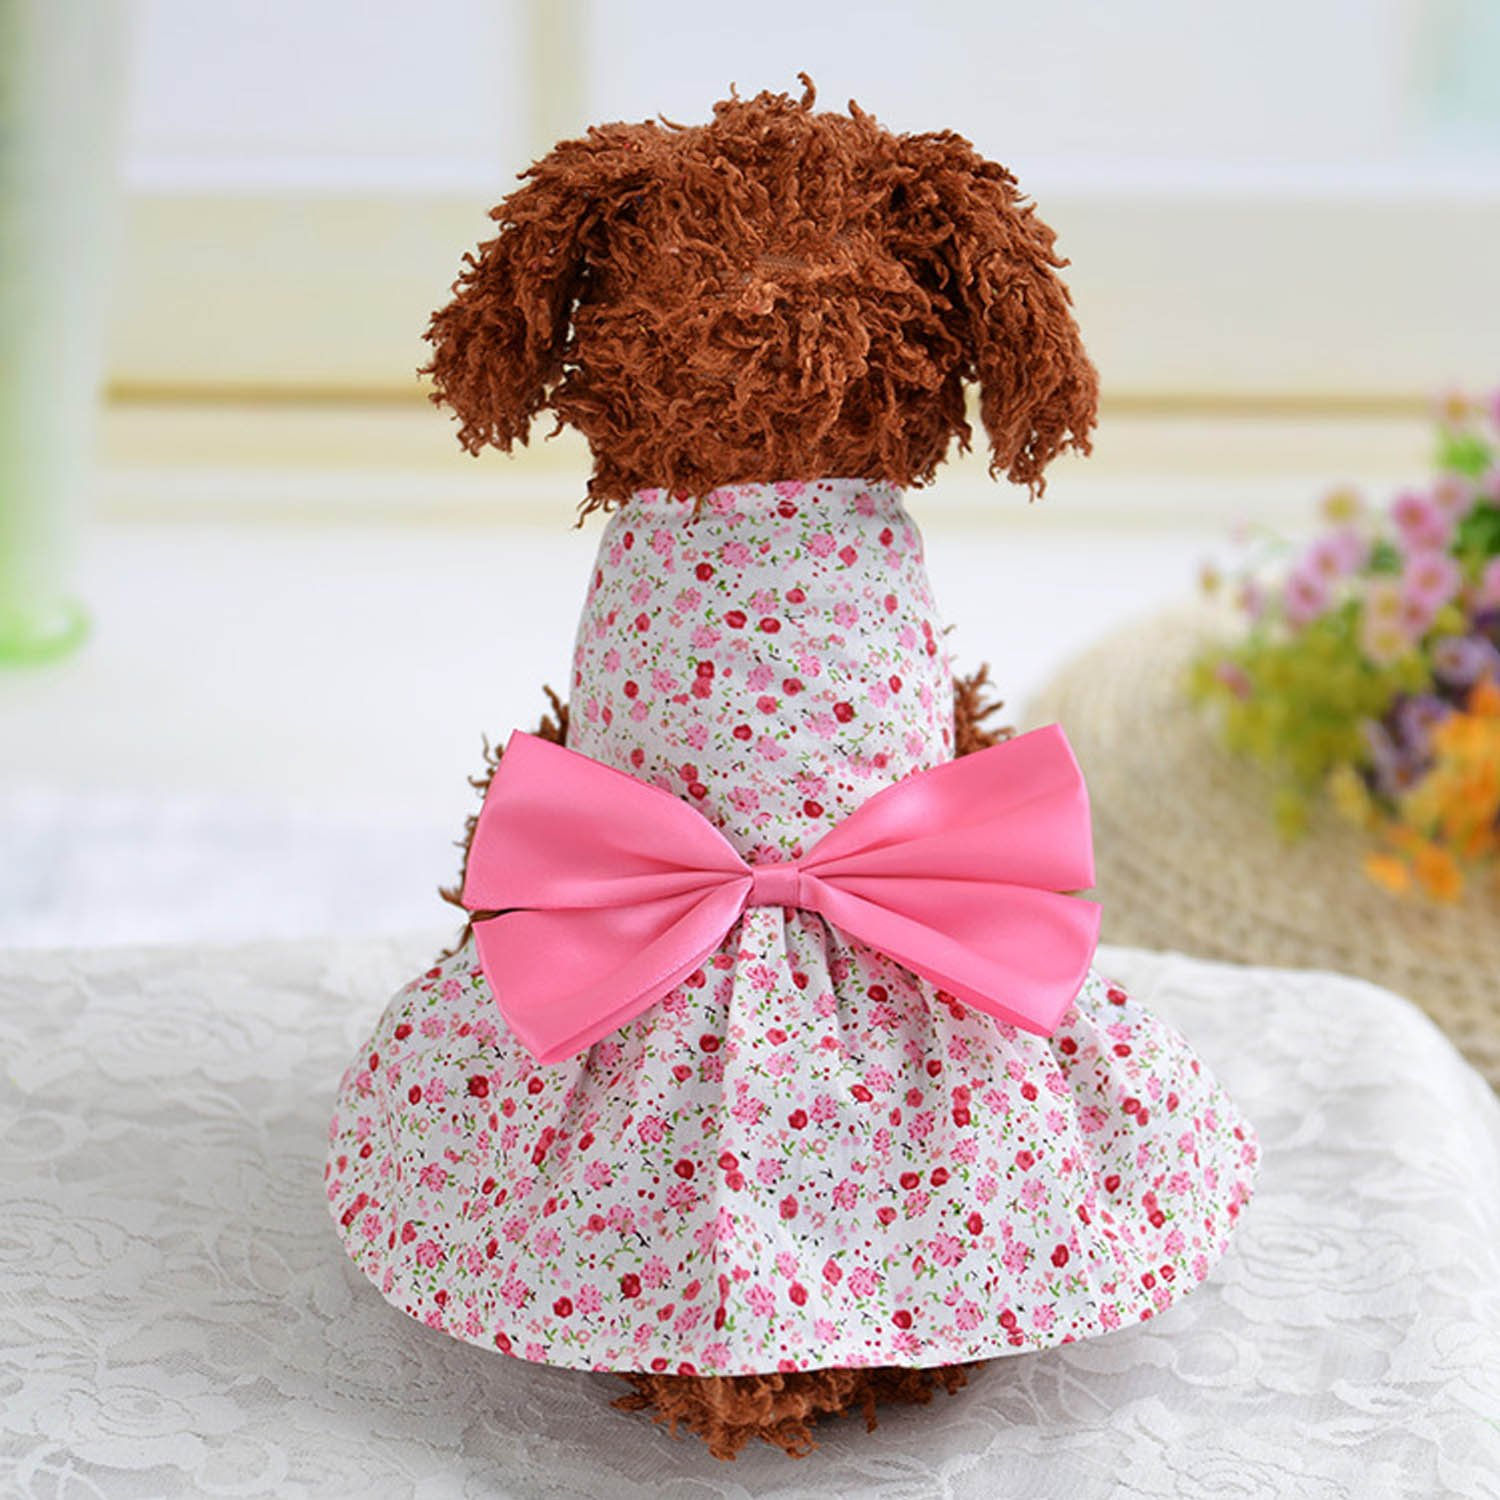 Elisona-Sweet Flower Style Pet Dog Skirt Dress Clothes Costume Apparel with Large Bowknot Ornament for Daily Party Wedding Holiday Pink Size XS